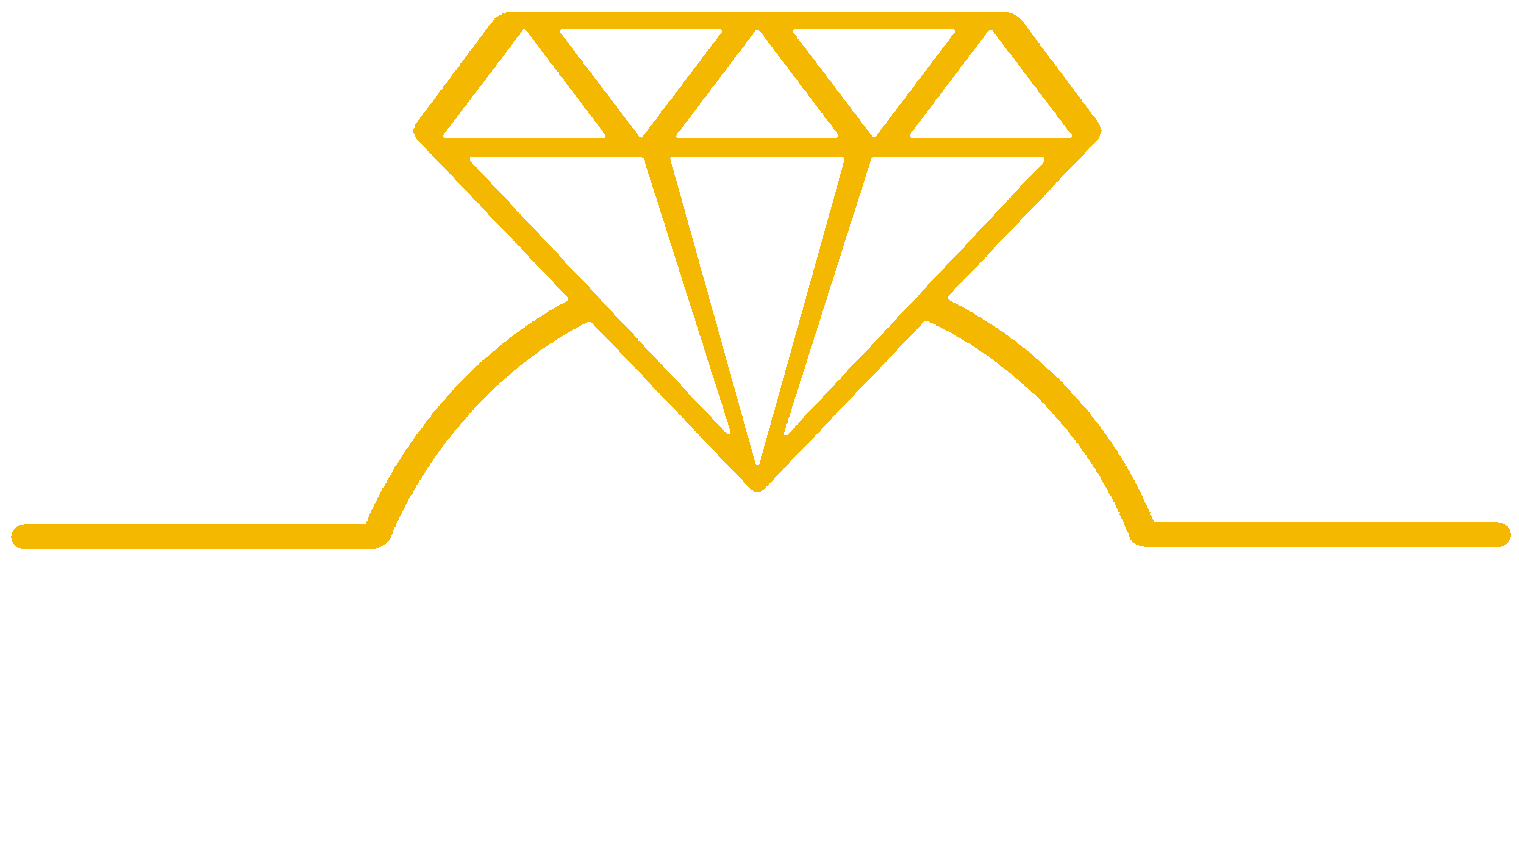 Nationwide Gold & Estate Buyers, NJ